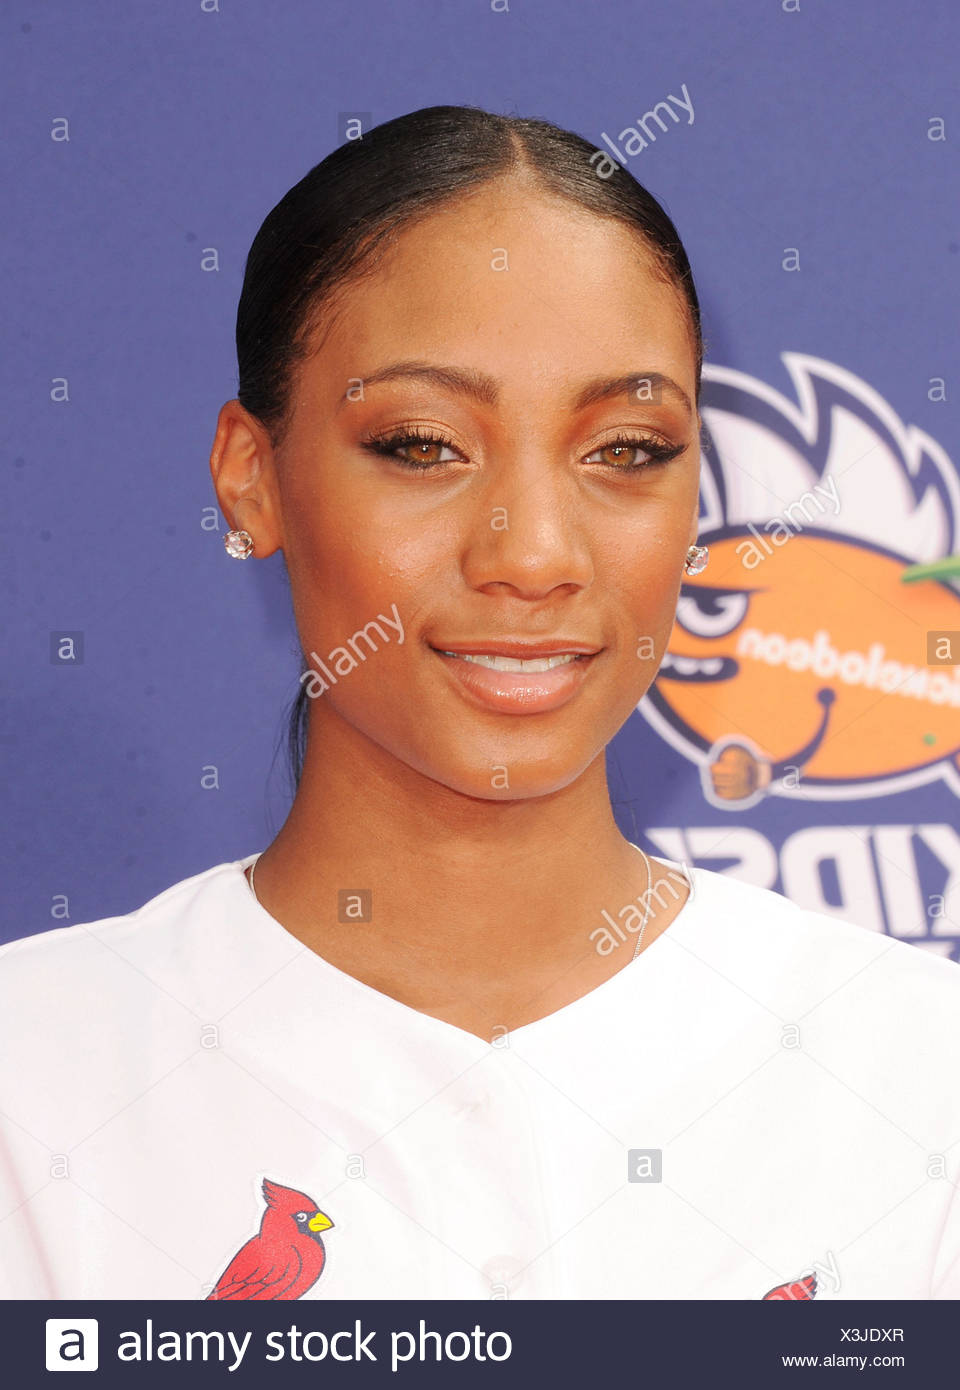 Baseball player Mo'ne Davis arrives at the Nickelodeon Kids' Choice Sports Awards 2015 at UCLA's Pauley Pavilion on July 16, 2015 in Westwood, California., Additional-Rights-Clearances-NA - Stock Image